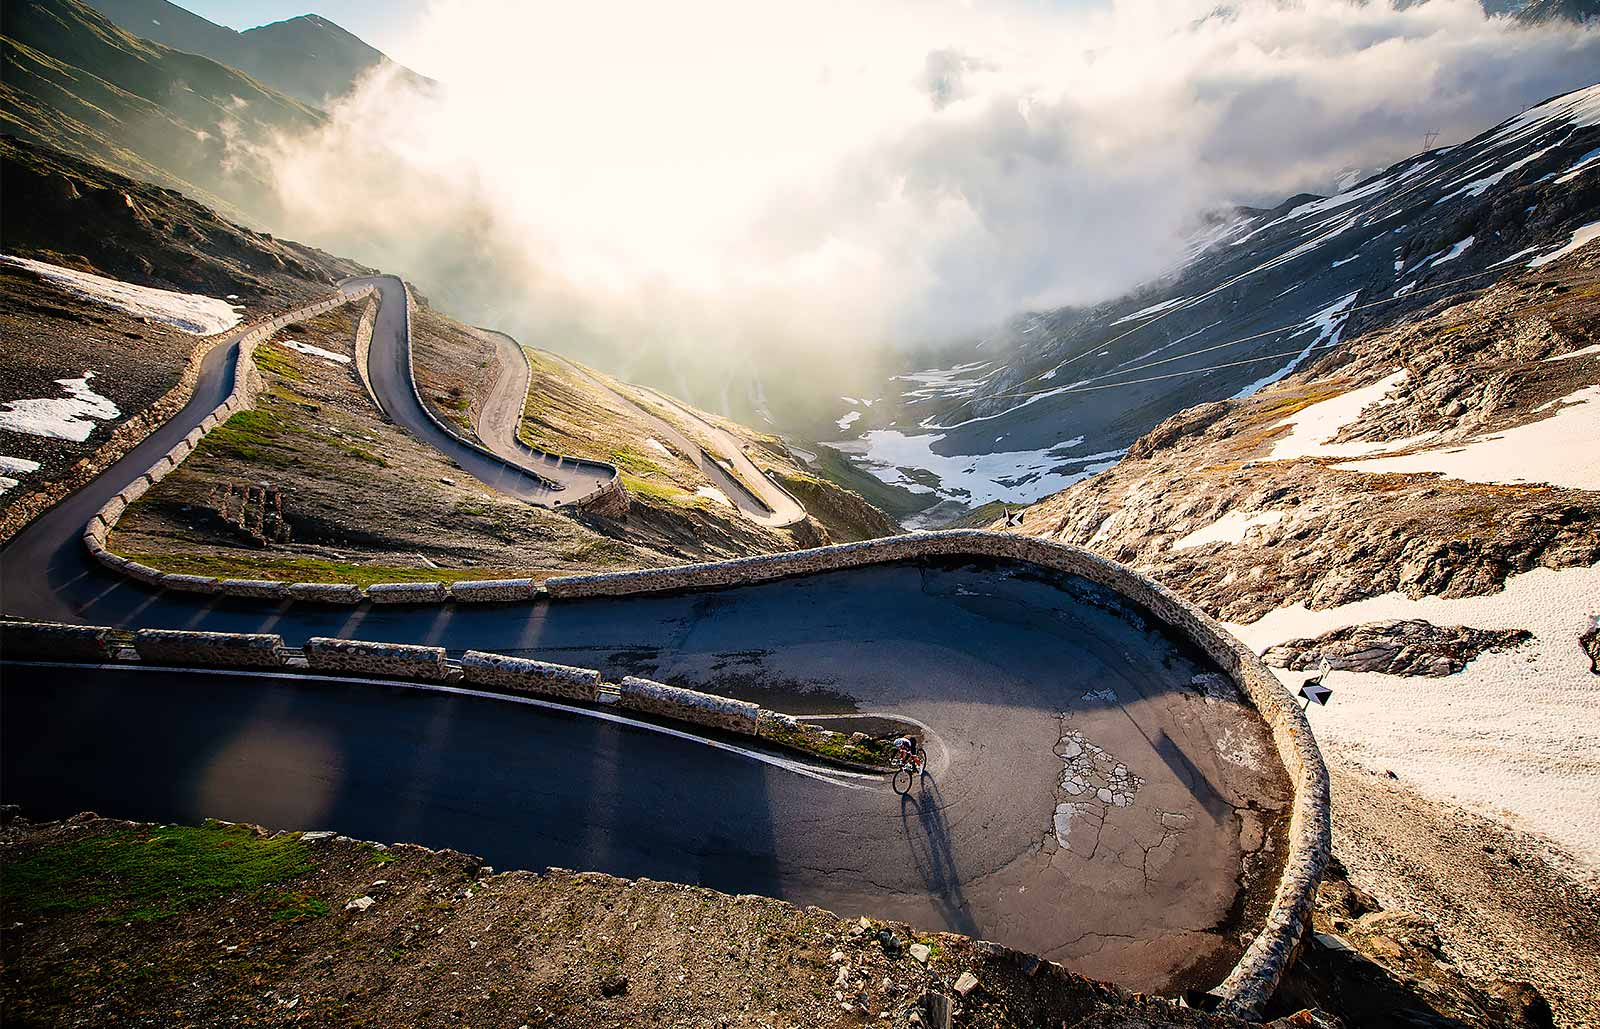 A sharp bend on the road that leads to passo dello Stelvio